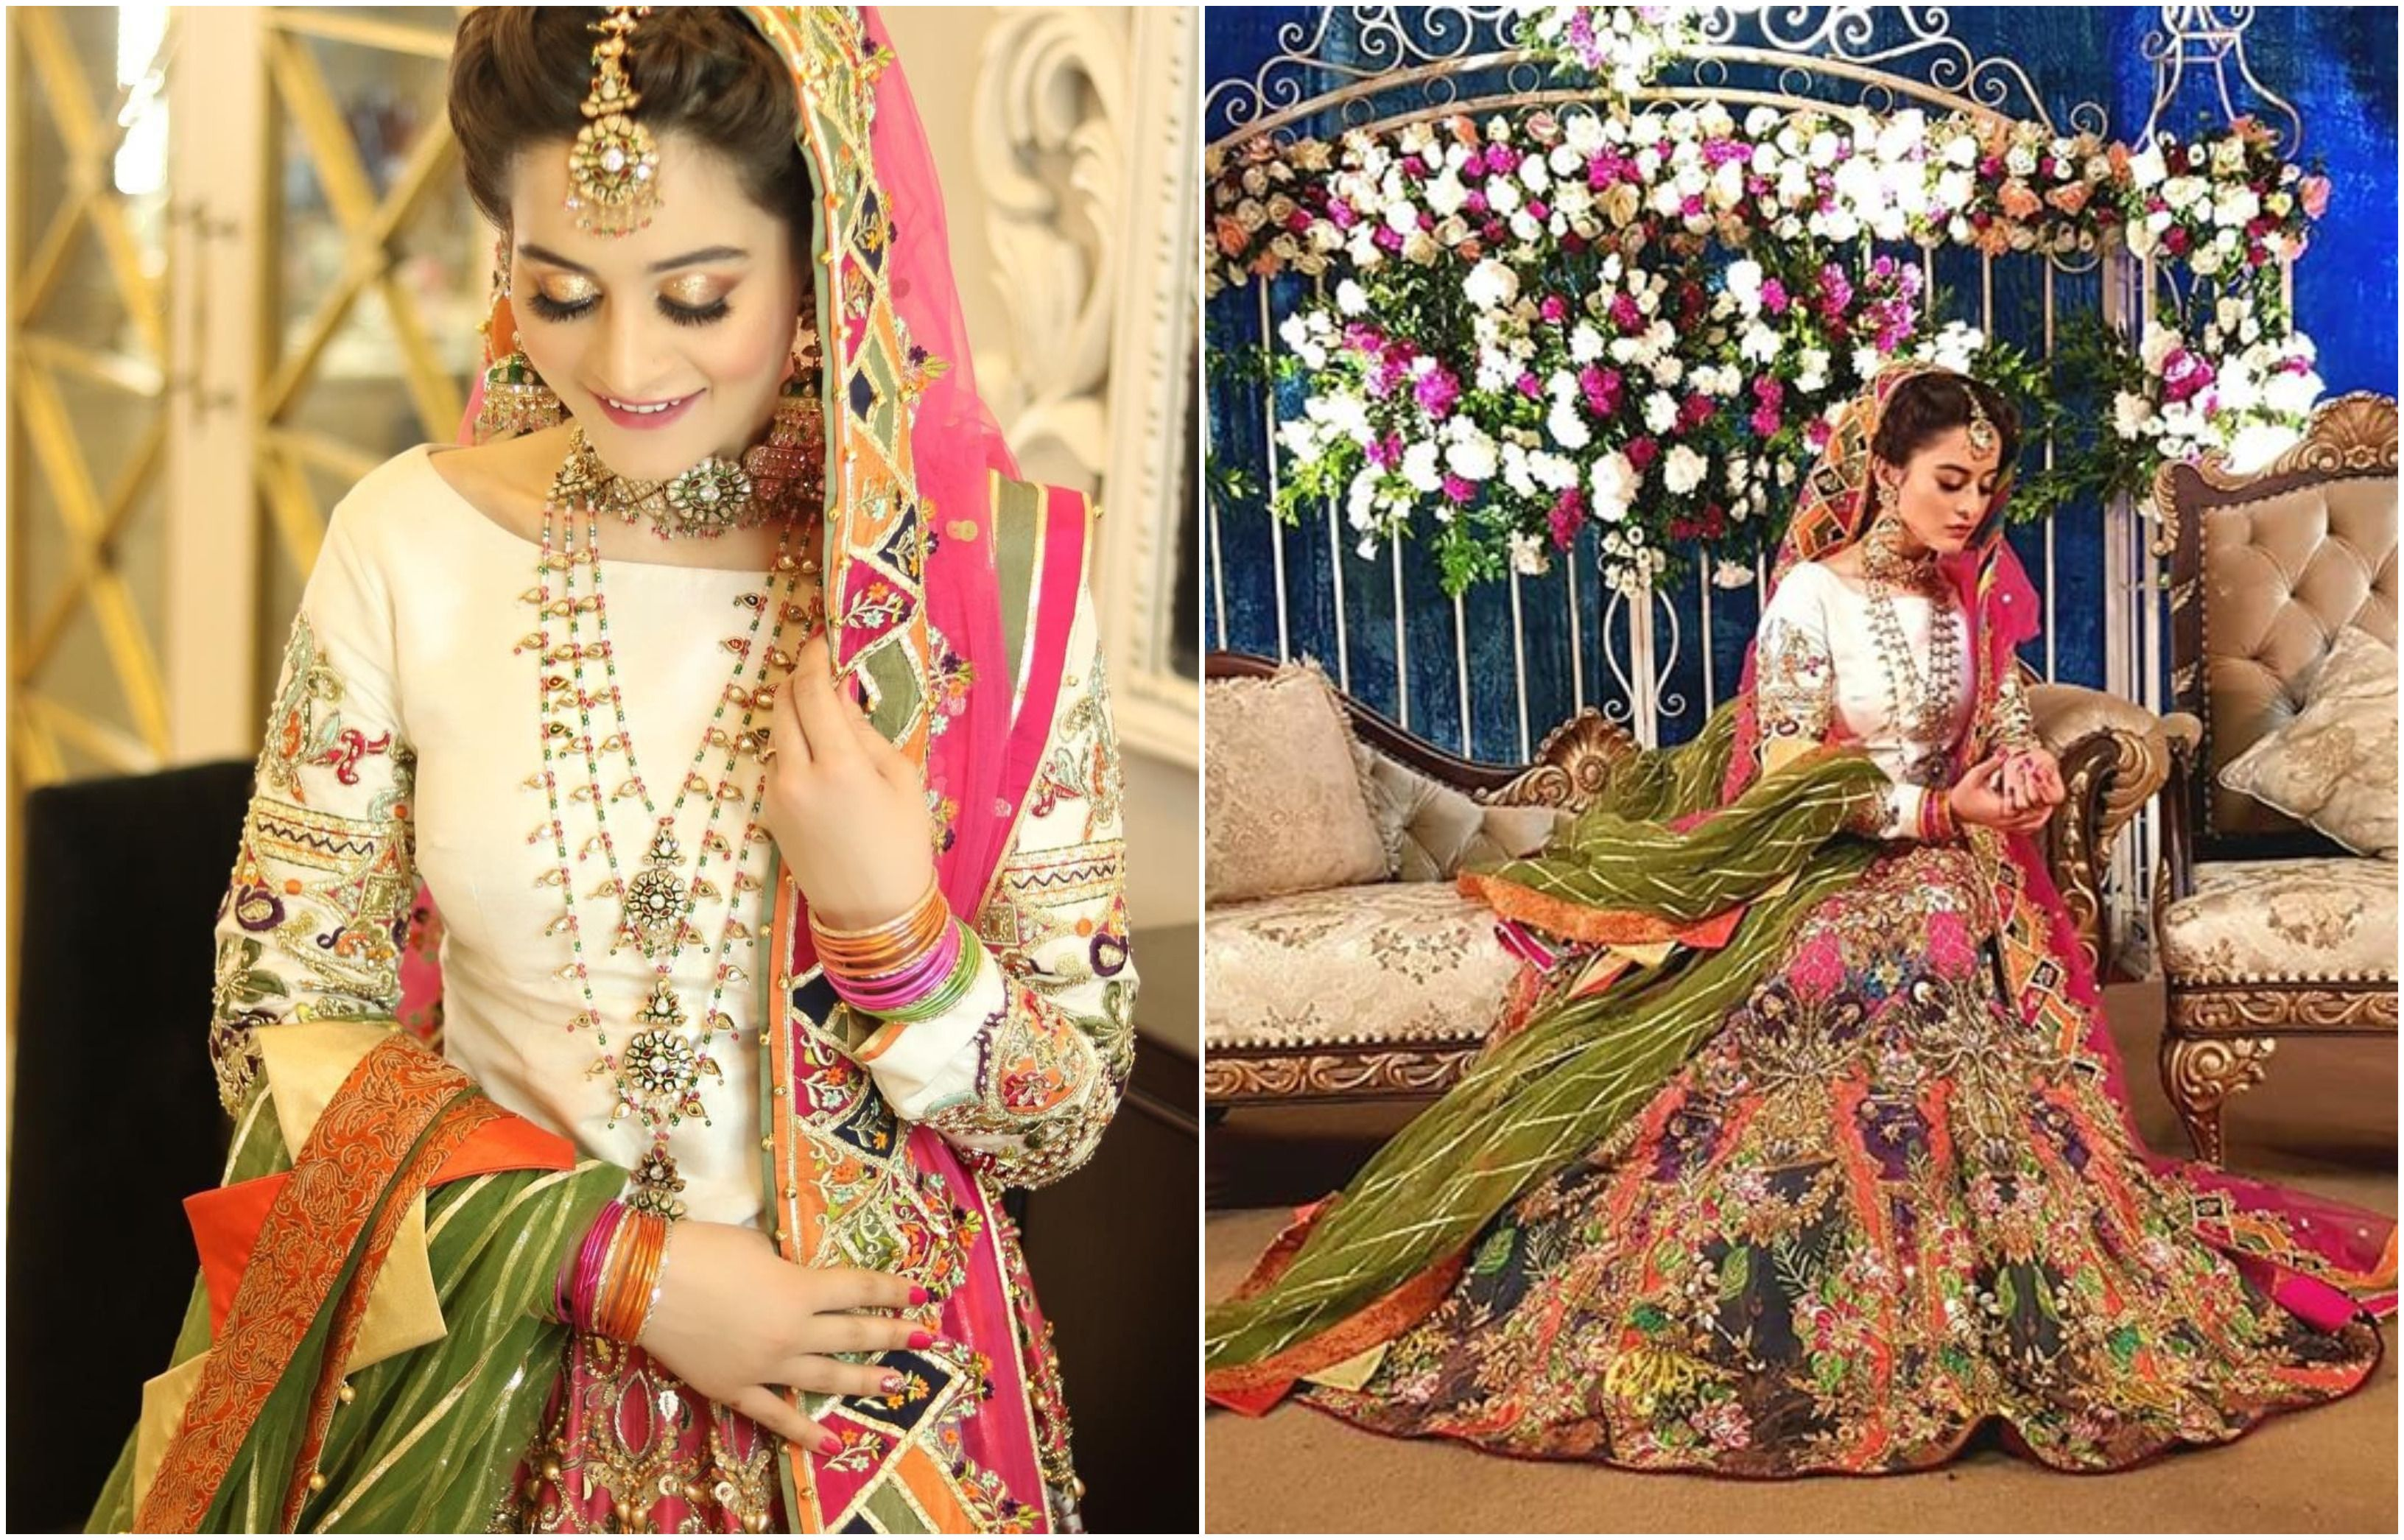 d6f3c40167 aiman is wearing erum khan couture on her mehndi ceremony. I wish that she  picks different designers for different events